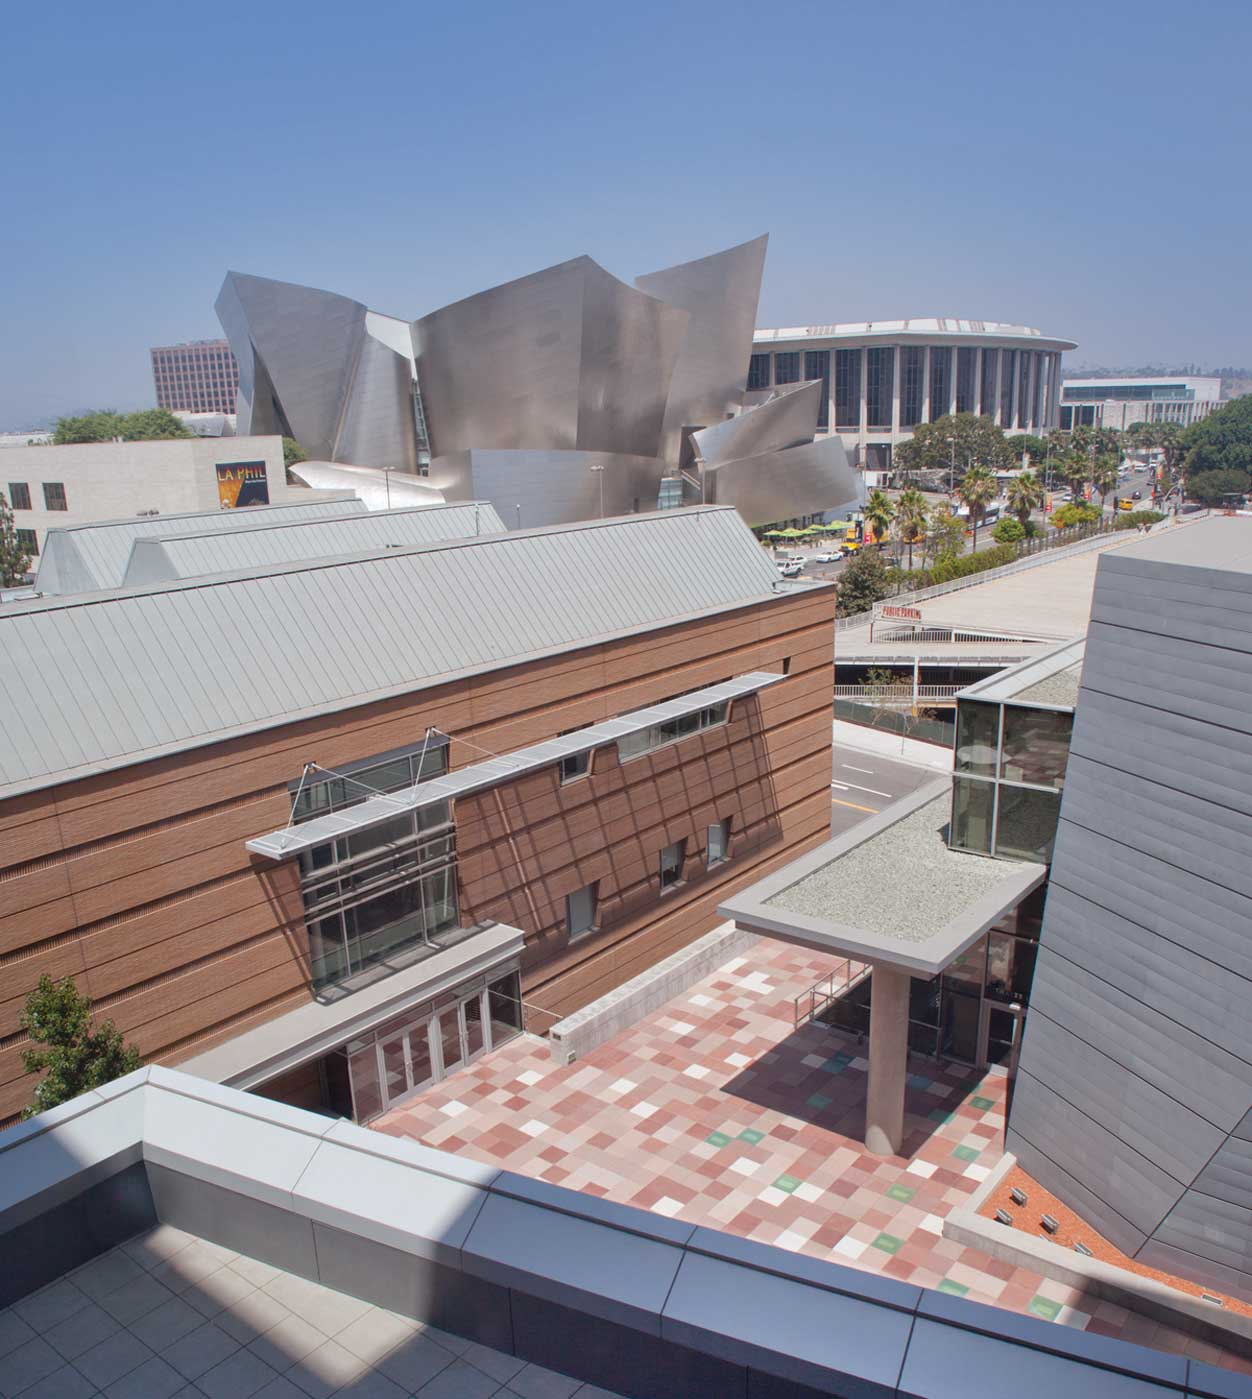 Colburn campus from above with view of Walt Disney Concert Hall